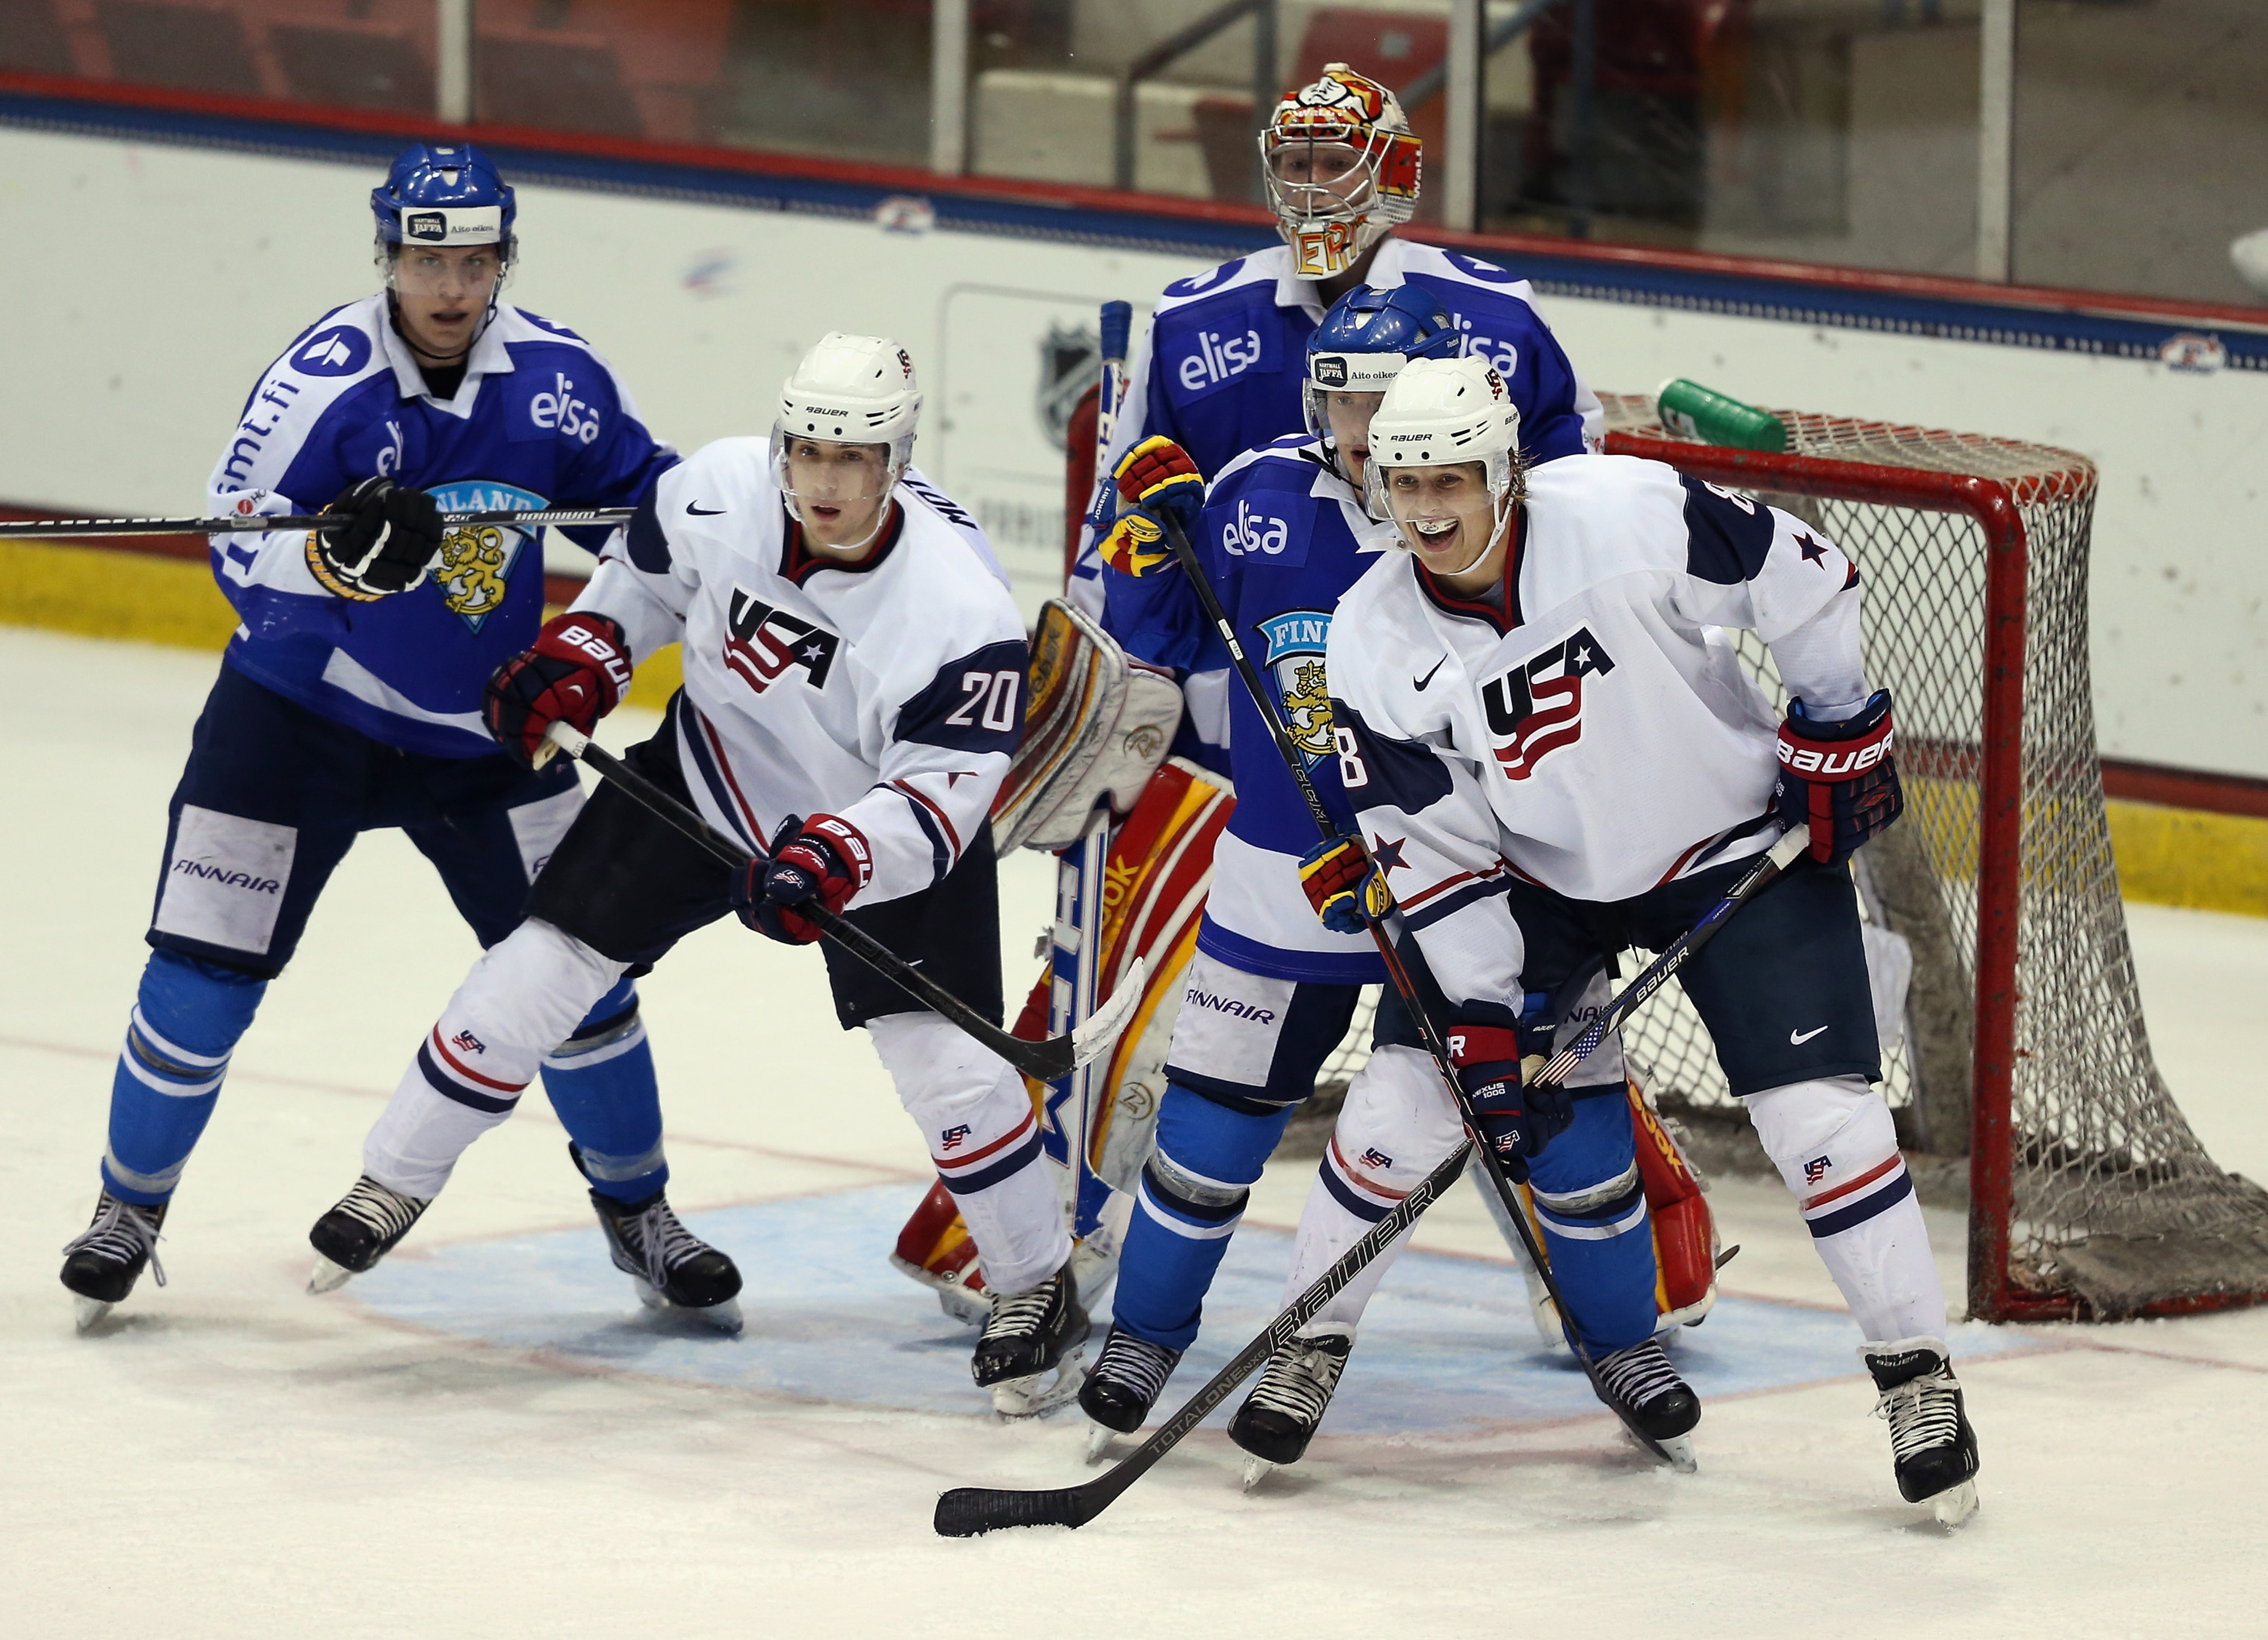 Tyler Motte(left) and Hudson Fasching(right) should be key players for next year's World Junior team.